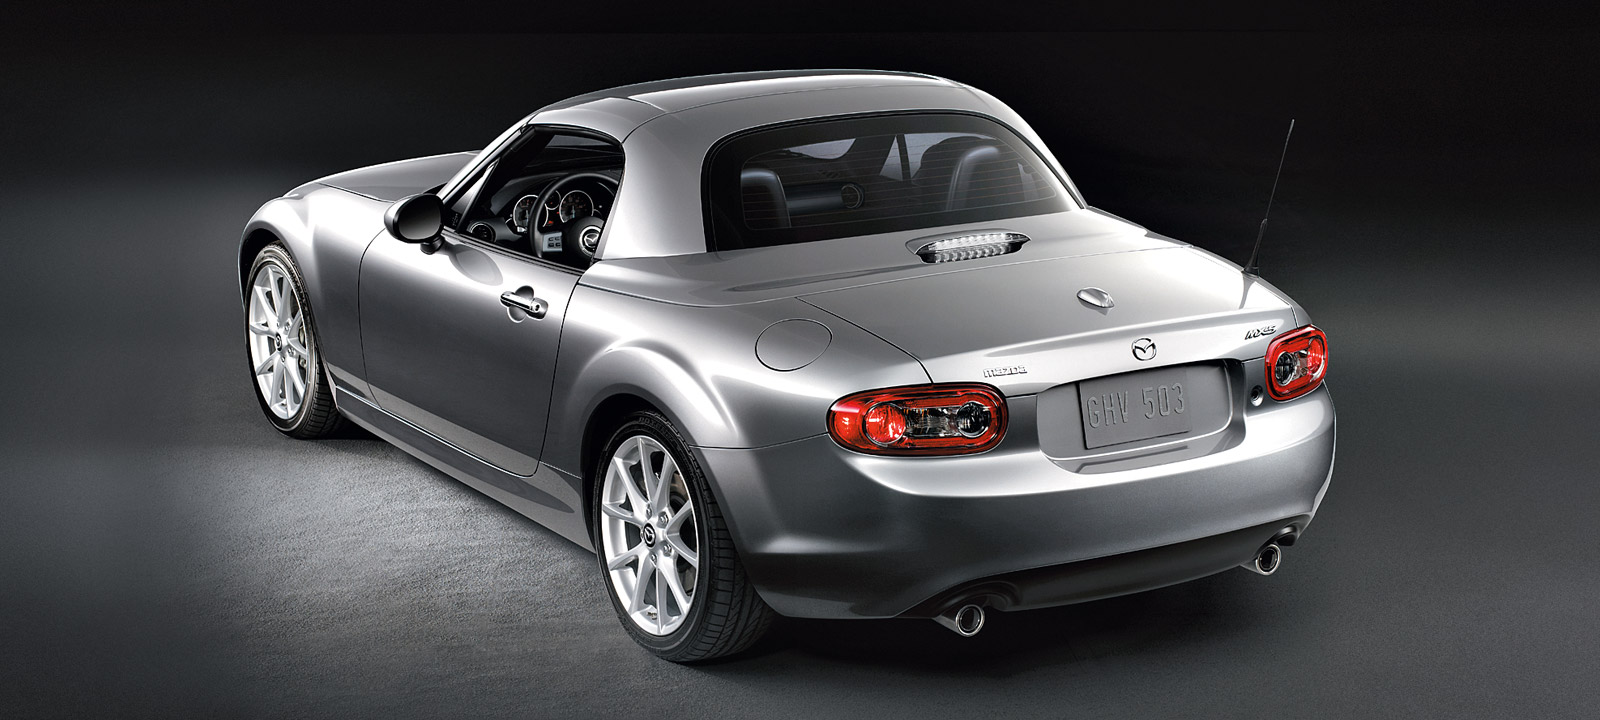 2015 mazda mx 5 miata 13 the news wheel. Black Bedroom Furniture Sets. Home Design Ideas